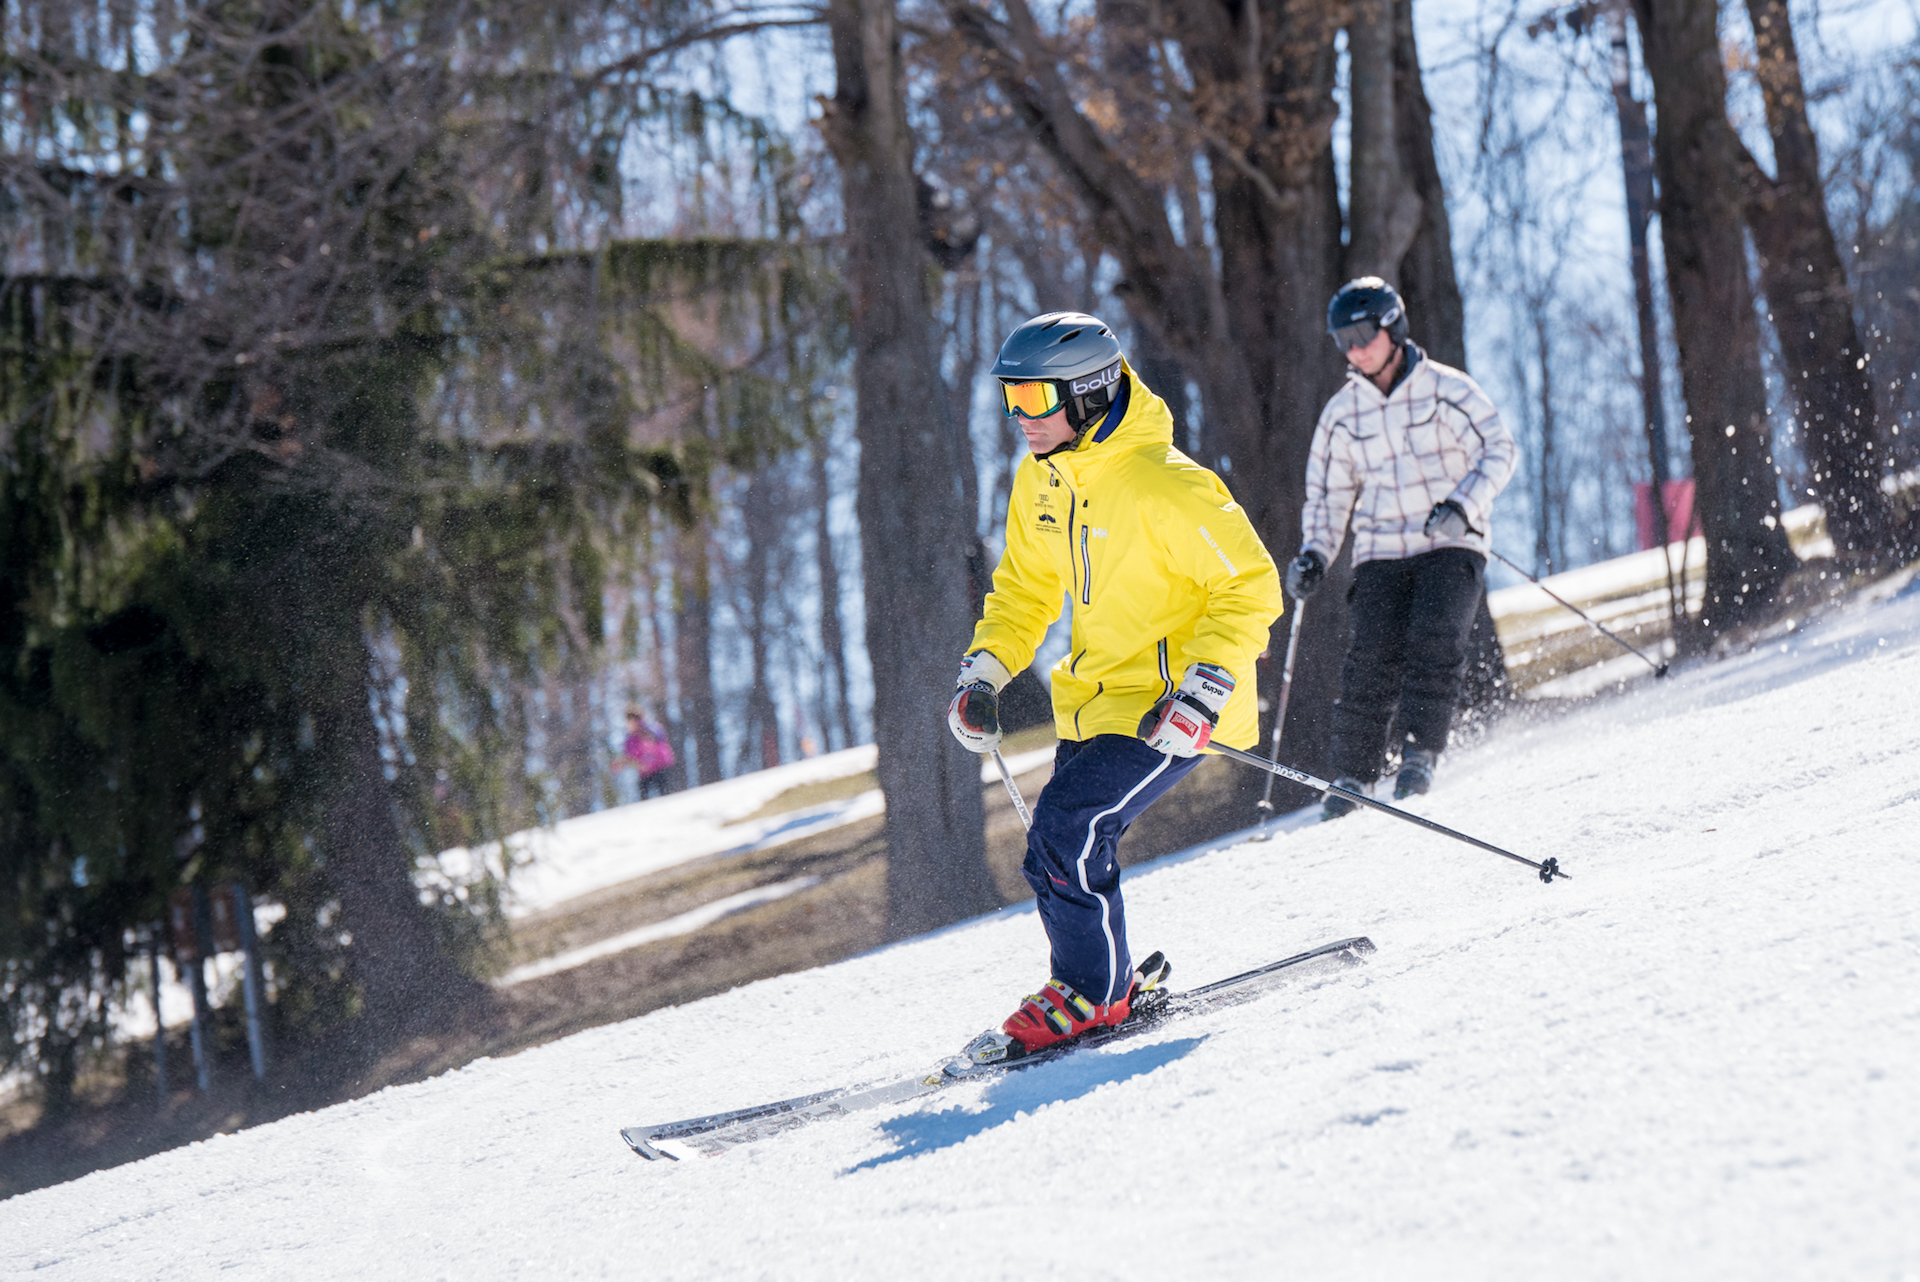 Skiing Mt. Mansfield at Snow Trails in Mansfield, Ohio